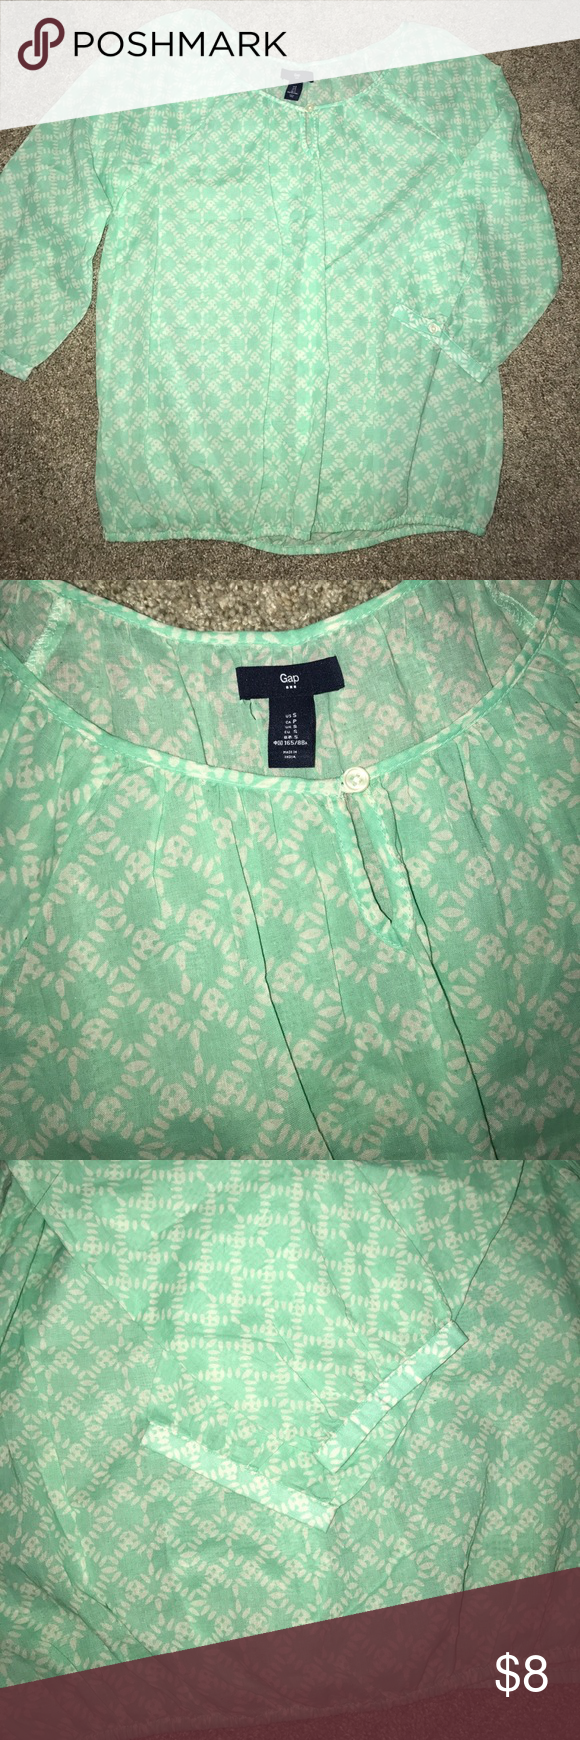 Women's GAP blouse Worn once, in excellent condition! Mint colored blouse with white detail, 3/4sleeve with gathered elastic band around the bottom. Perfect for spring g/summer. Accepting offers GAP Tops Blouses